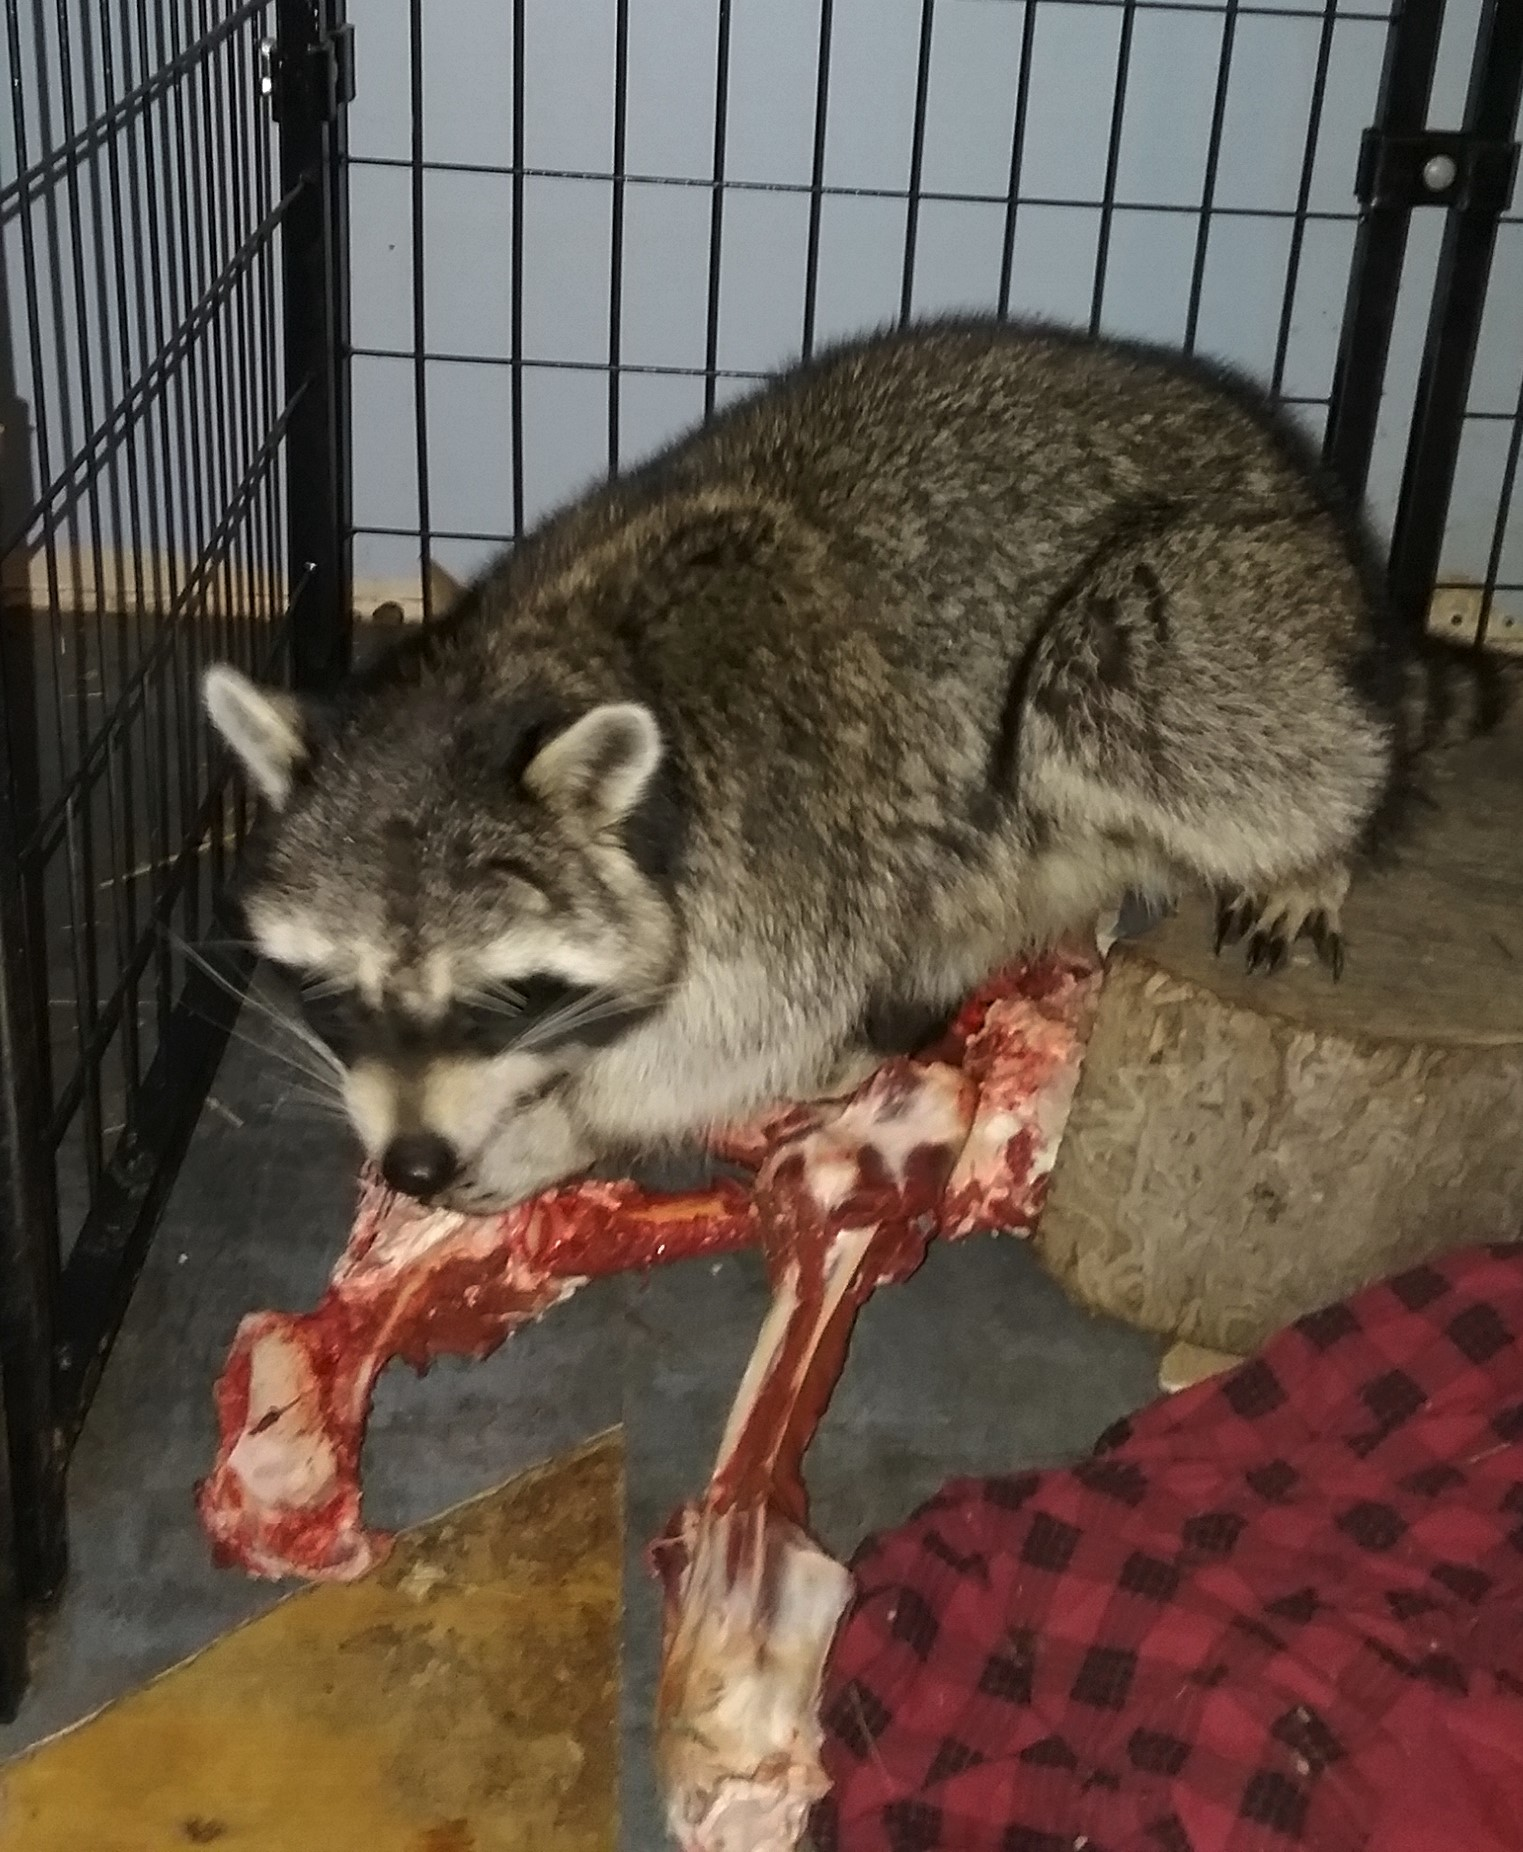 We supplement our raccoons diet with venison supplied by local hunters in fall. - Photo by Ame Vanorio